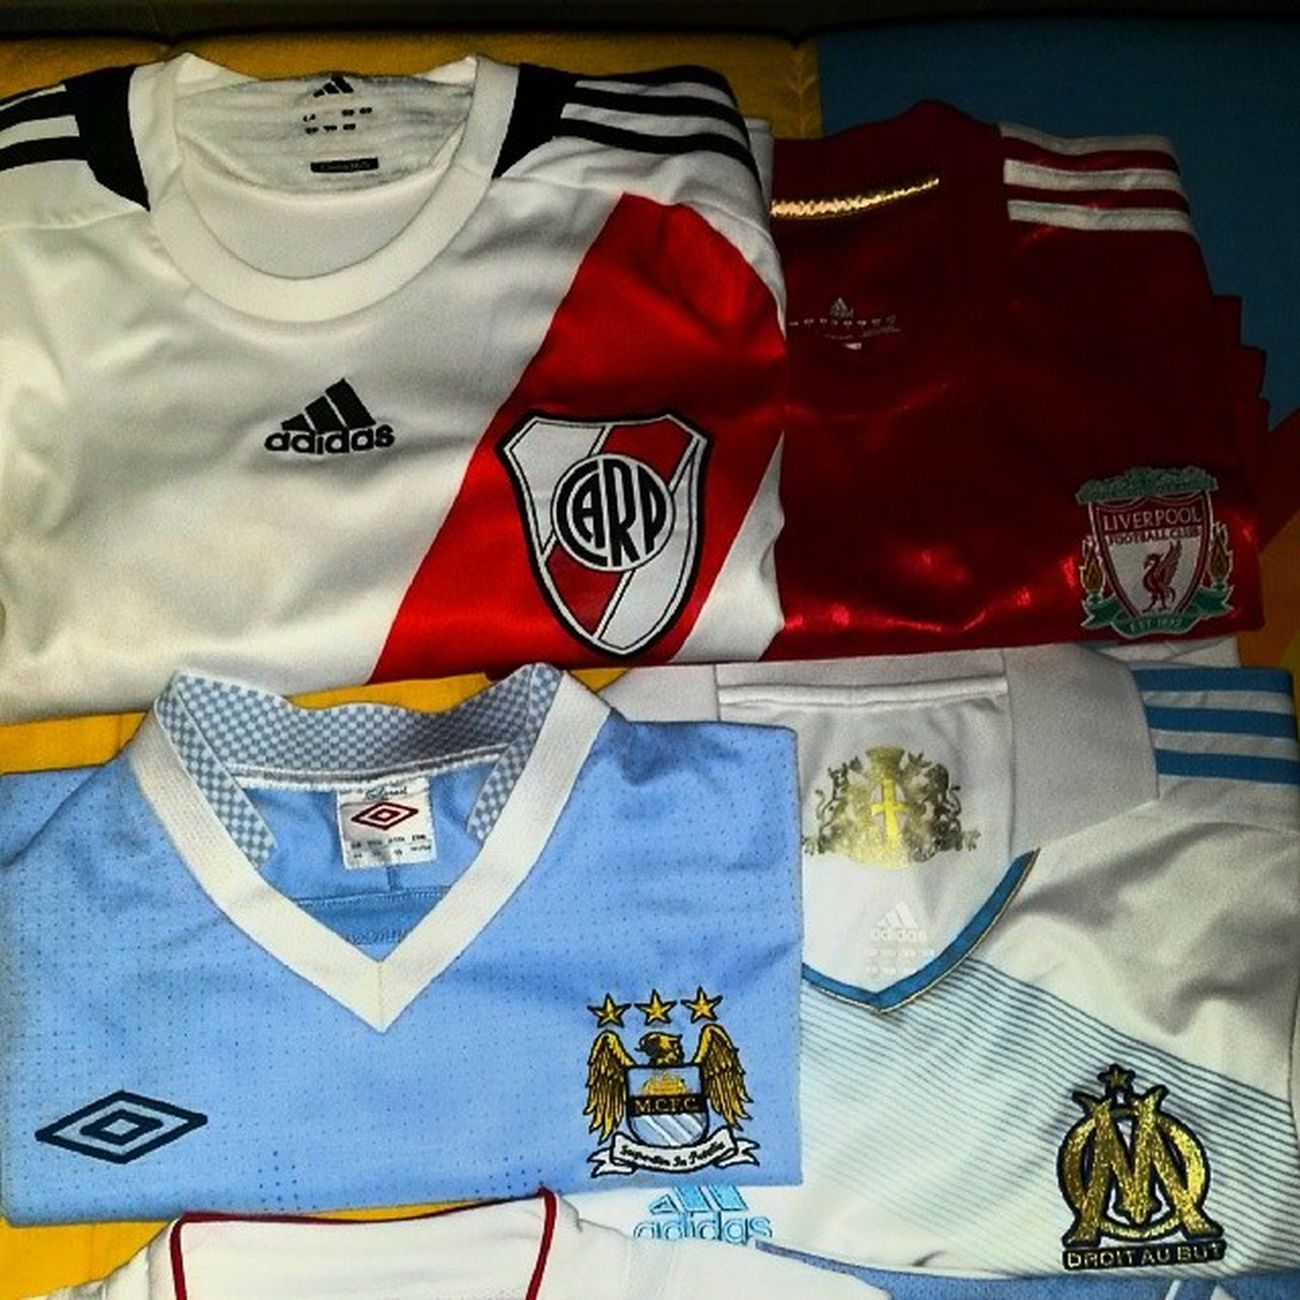 My passion.... Football Shirt Adidas Riverplate Liverpool Olympique Marseille Top Umbro ManchesterCity Citizens Istacool Instagood Instagram Istalove Followme Follow Istafresh Instamood